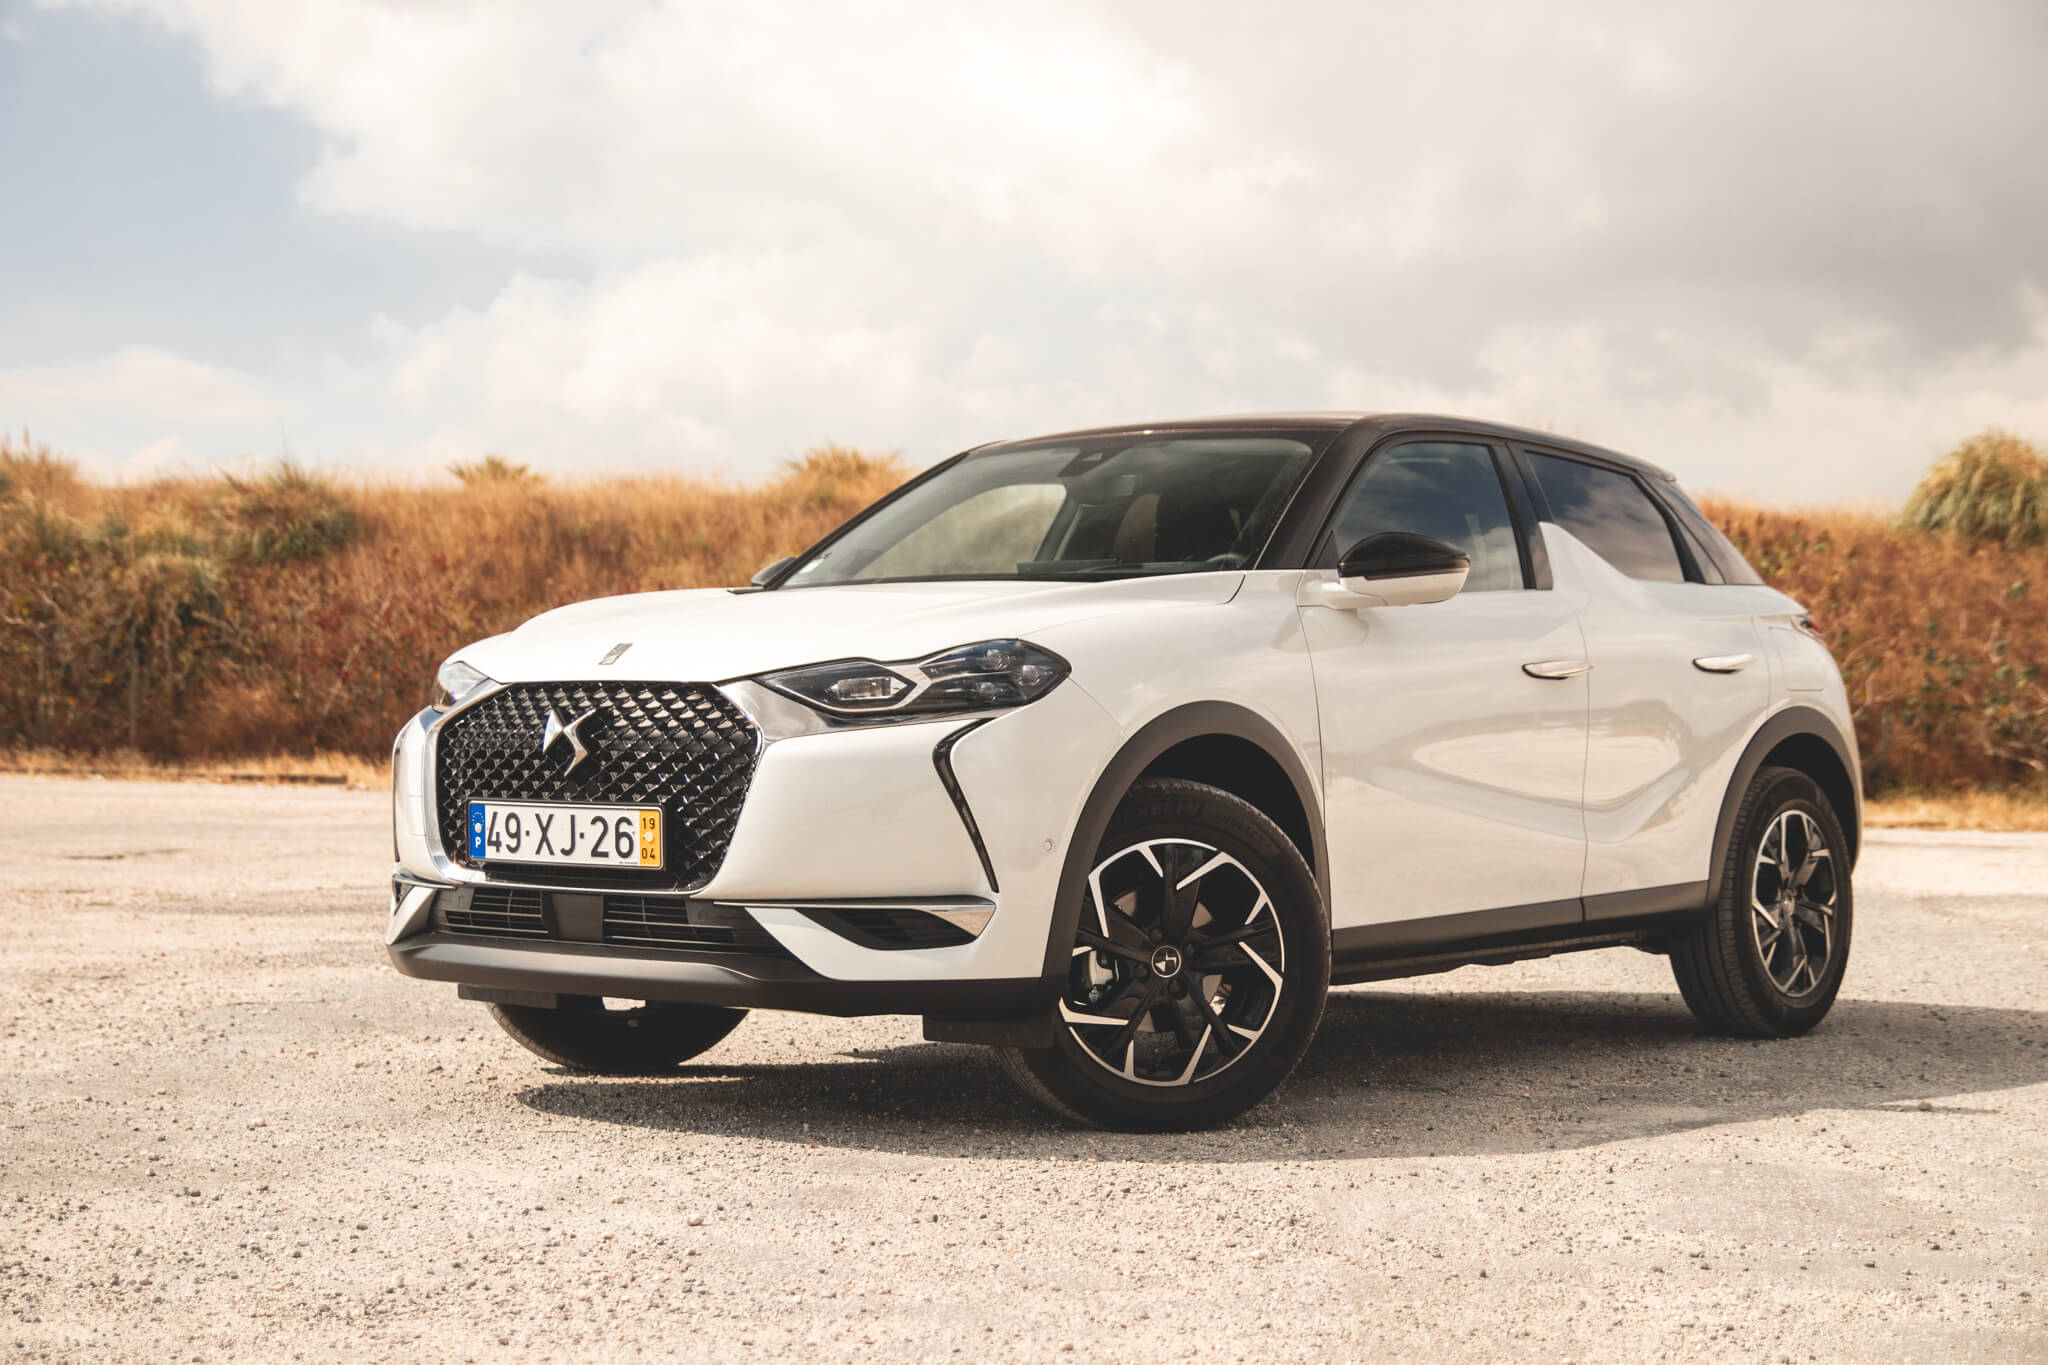 DS 3 Crossback 1.5 BlueHDI